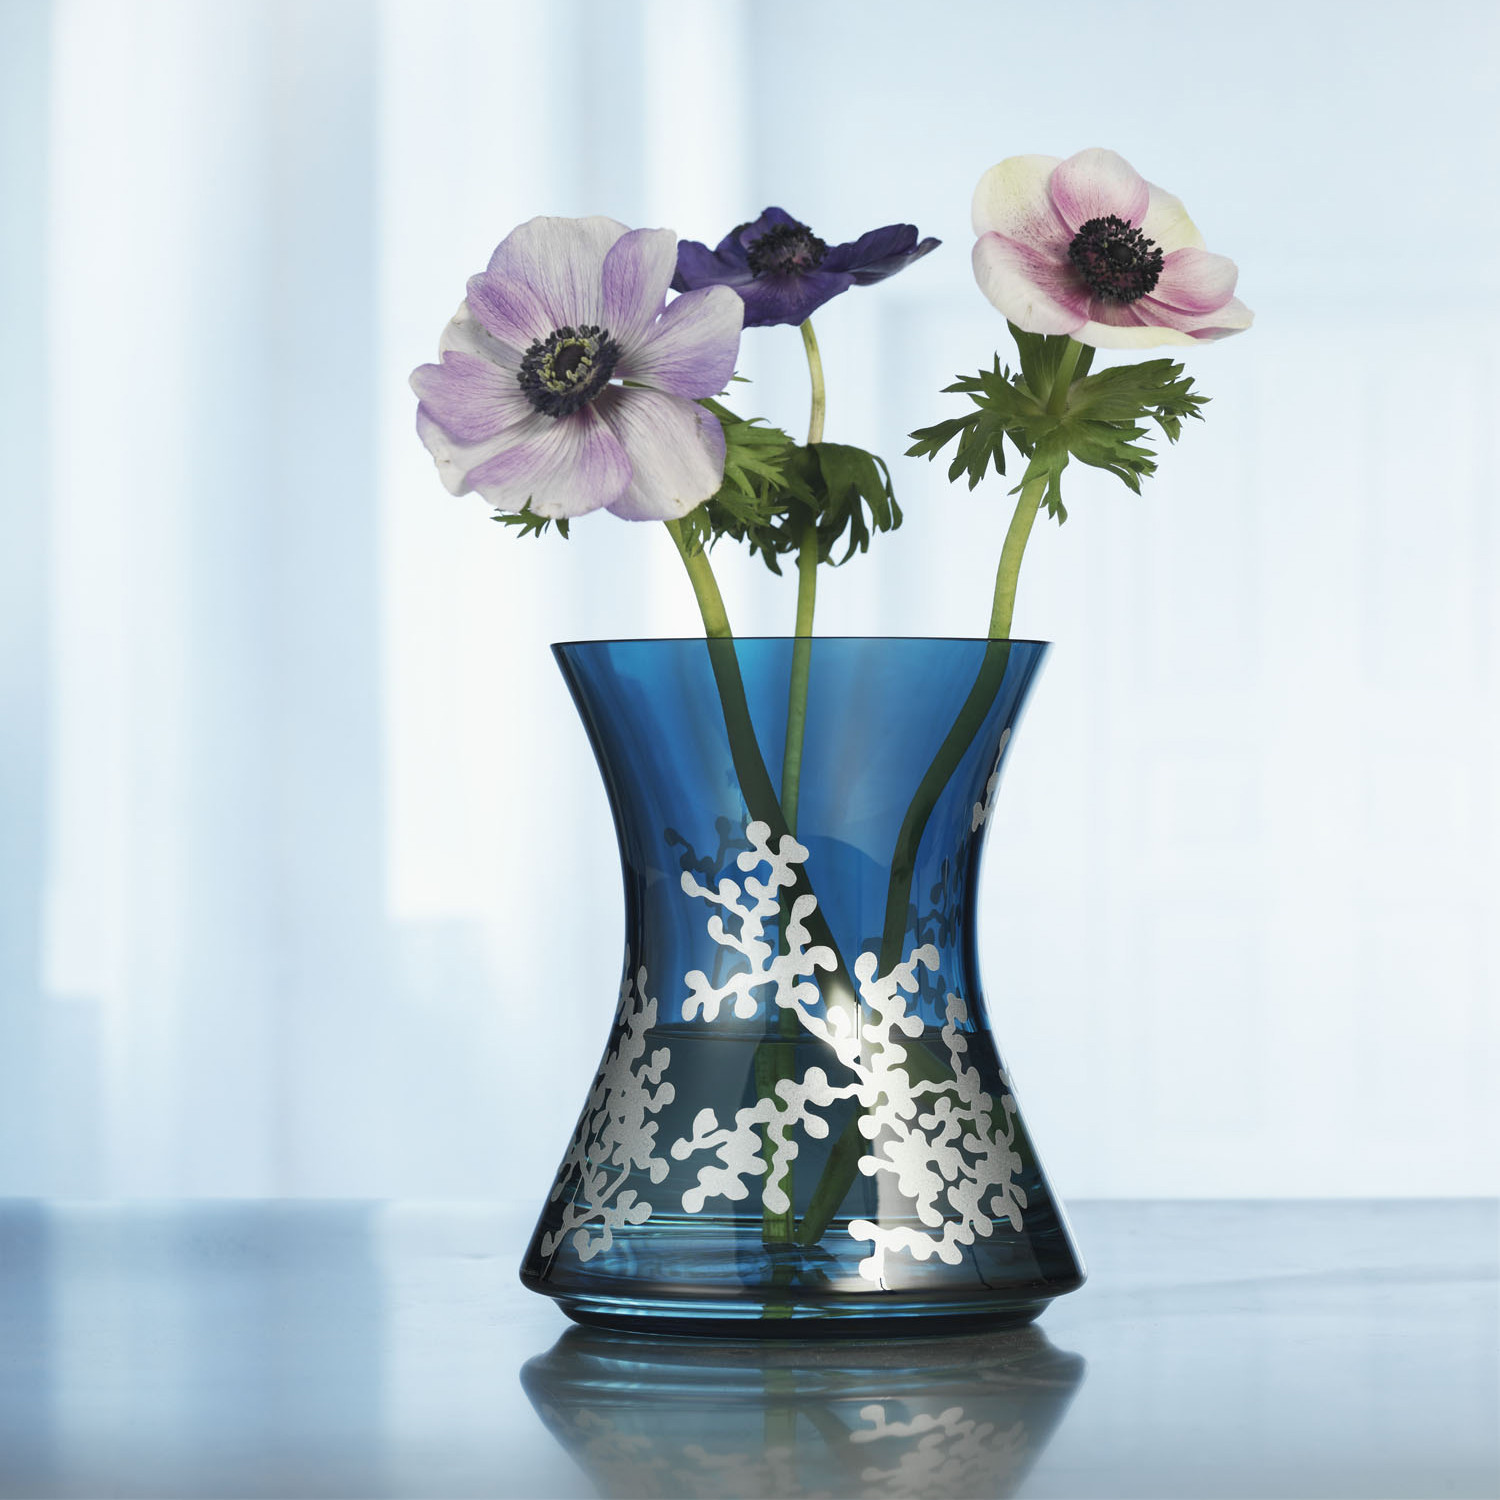 Tanne vase tall rosendahl touch of modern tanne vase tall reviewsmspy